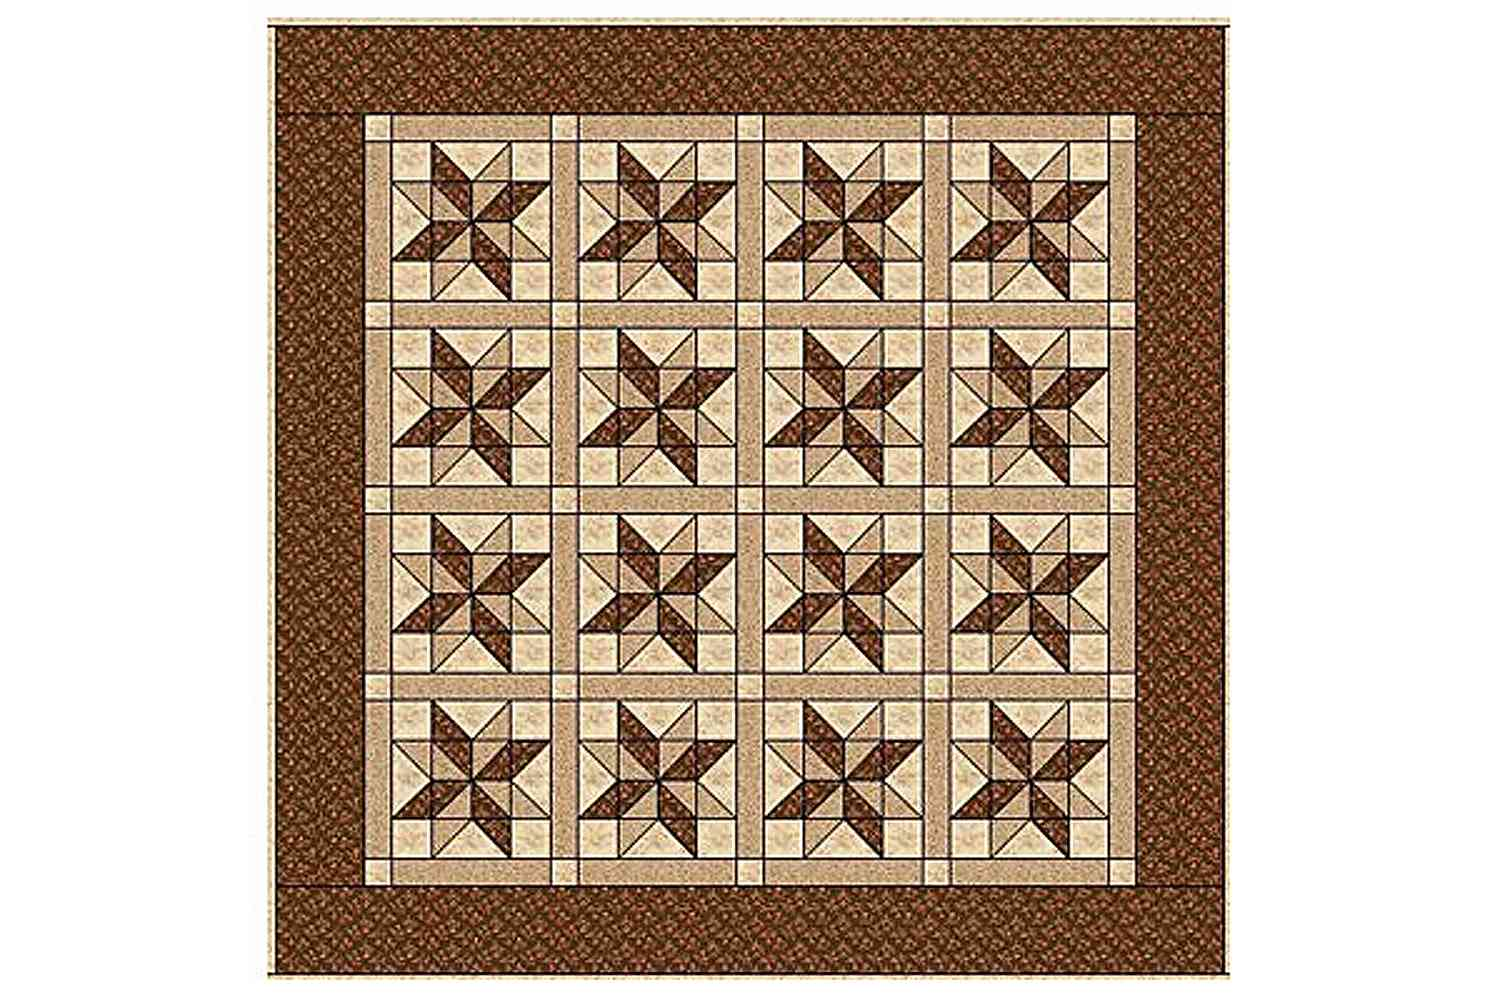 Sarah's Choice Quilt in a Horizontal Setting